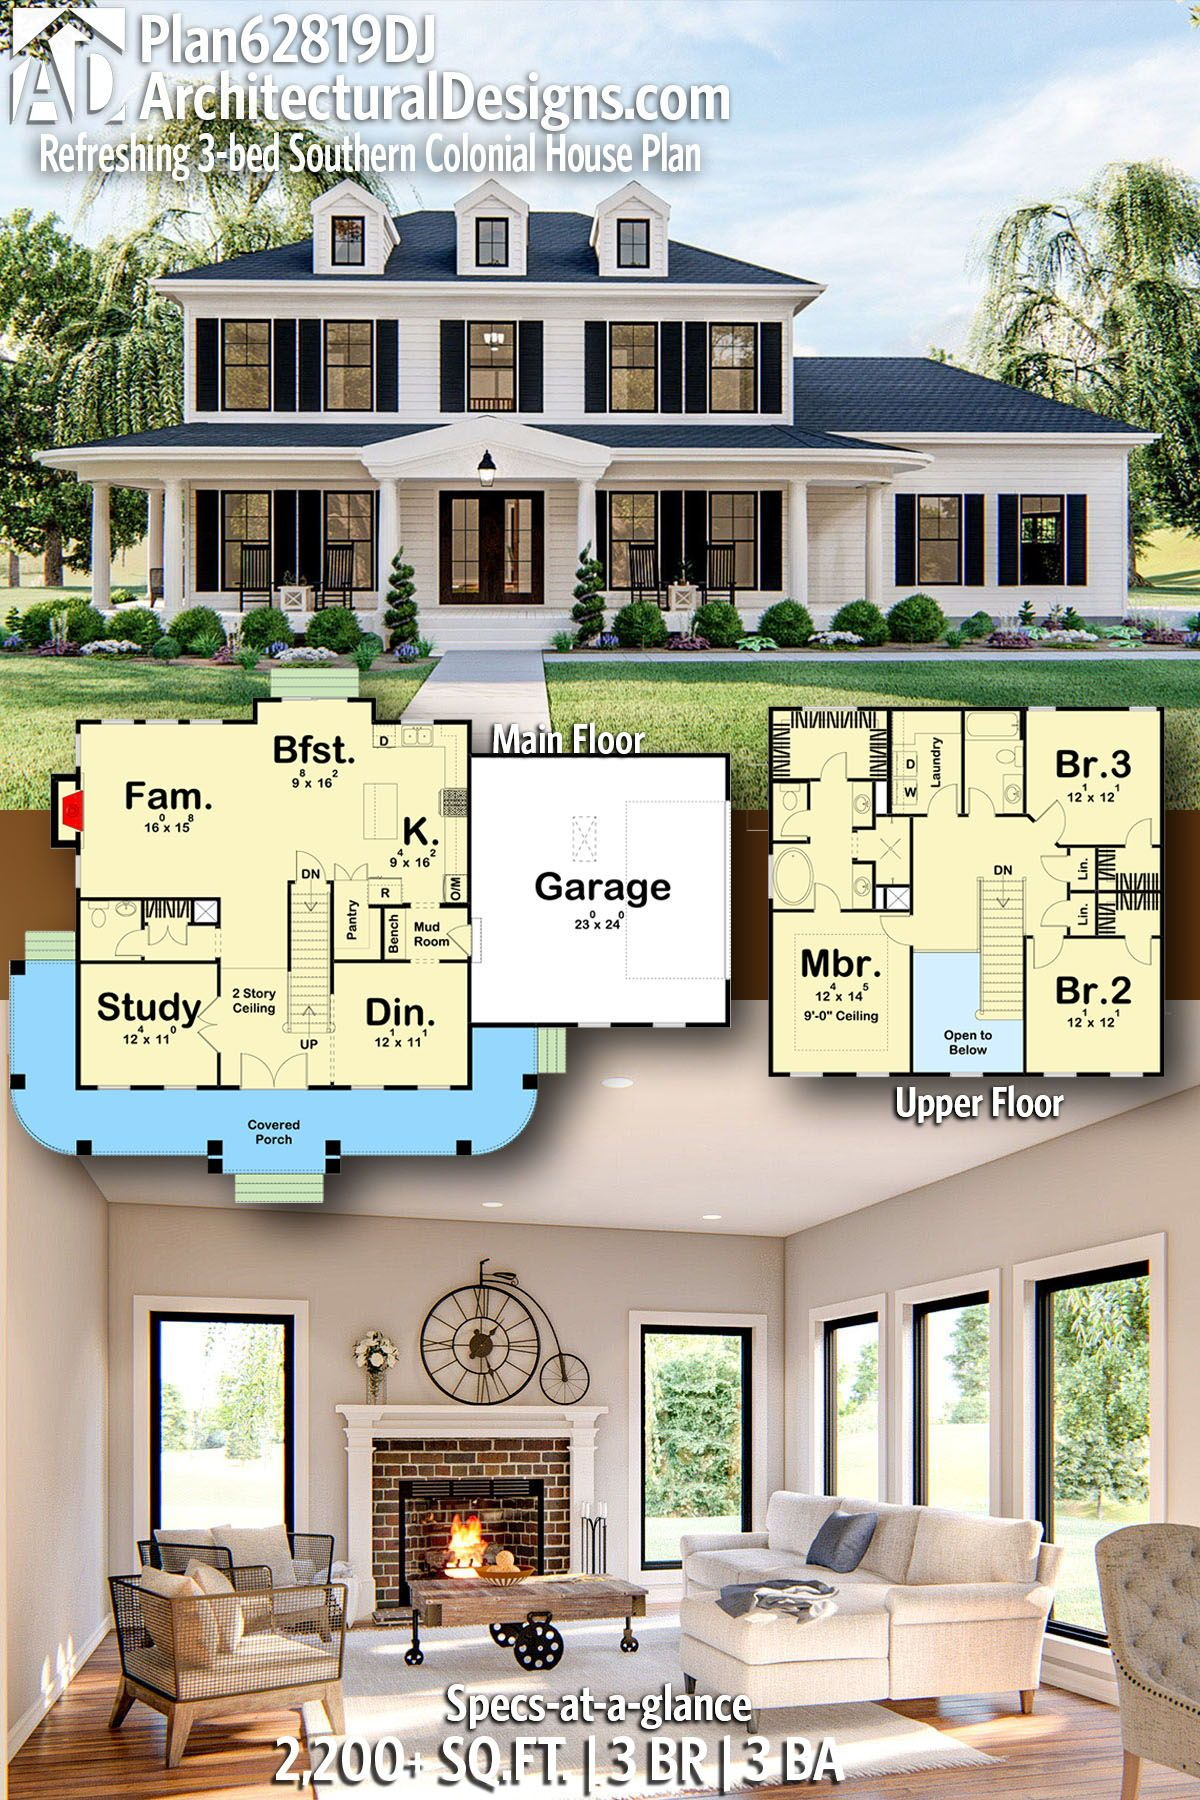 Plan 62819dj Refreshing 3 Bed Southern Colonial House Plan In 2020 Colonial House Plans Colonial House House Plans